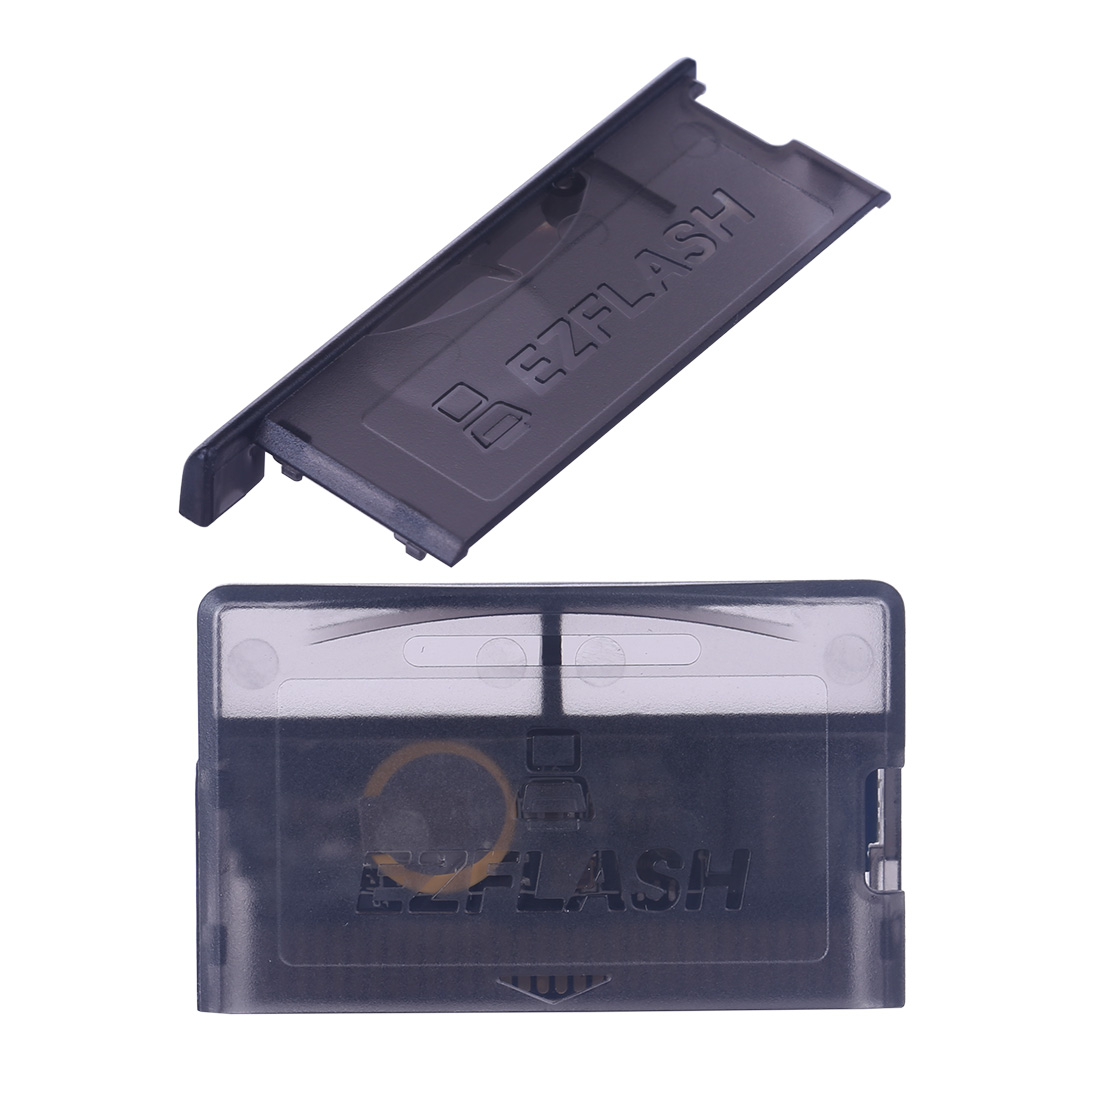 EZ-FLASH OMEGA for Game Boy Advance